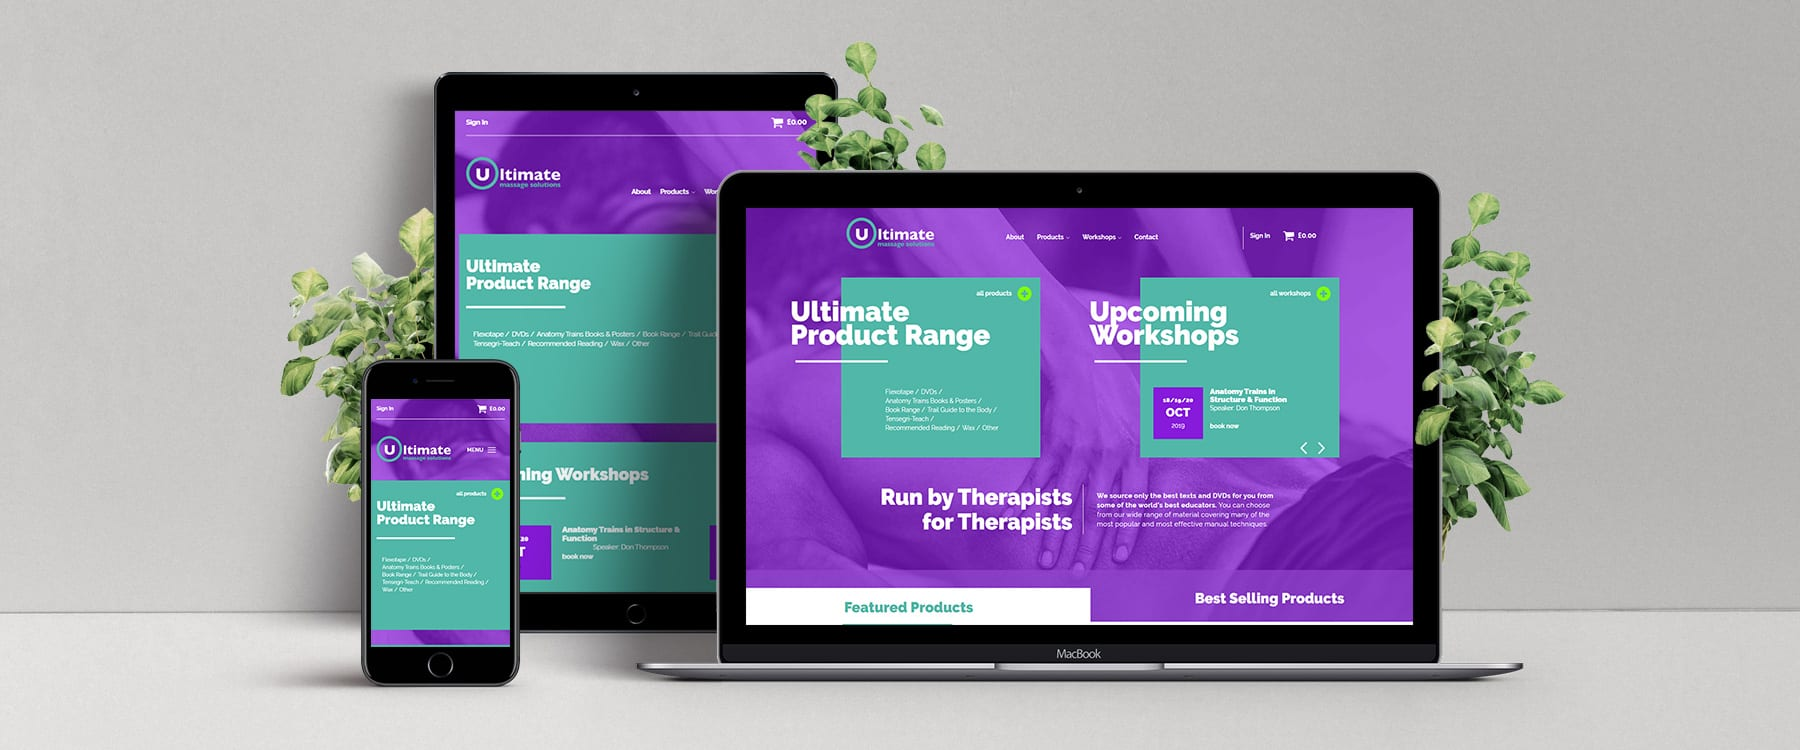 Ultimate Massage Solutions Unveil New eCommerce Website Image